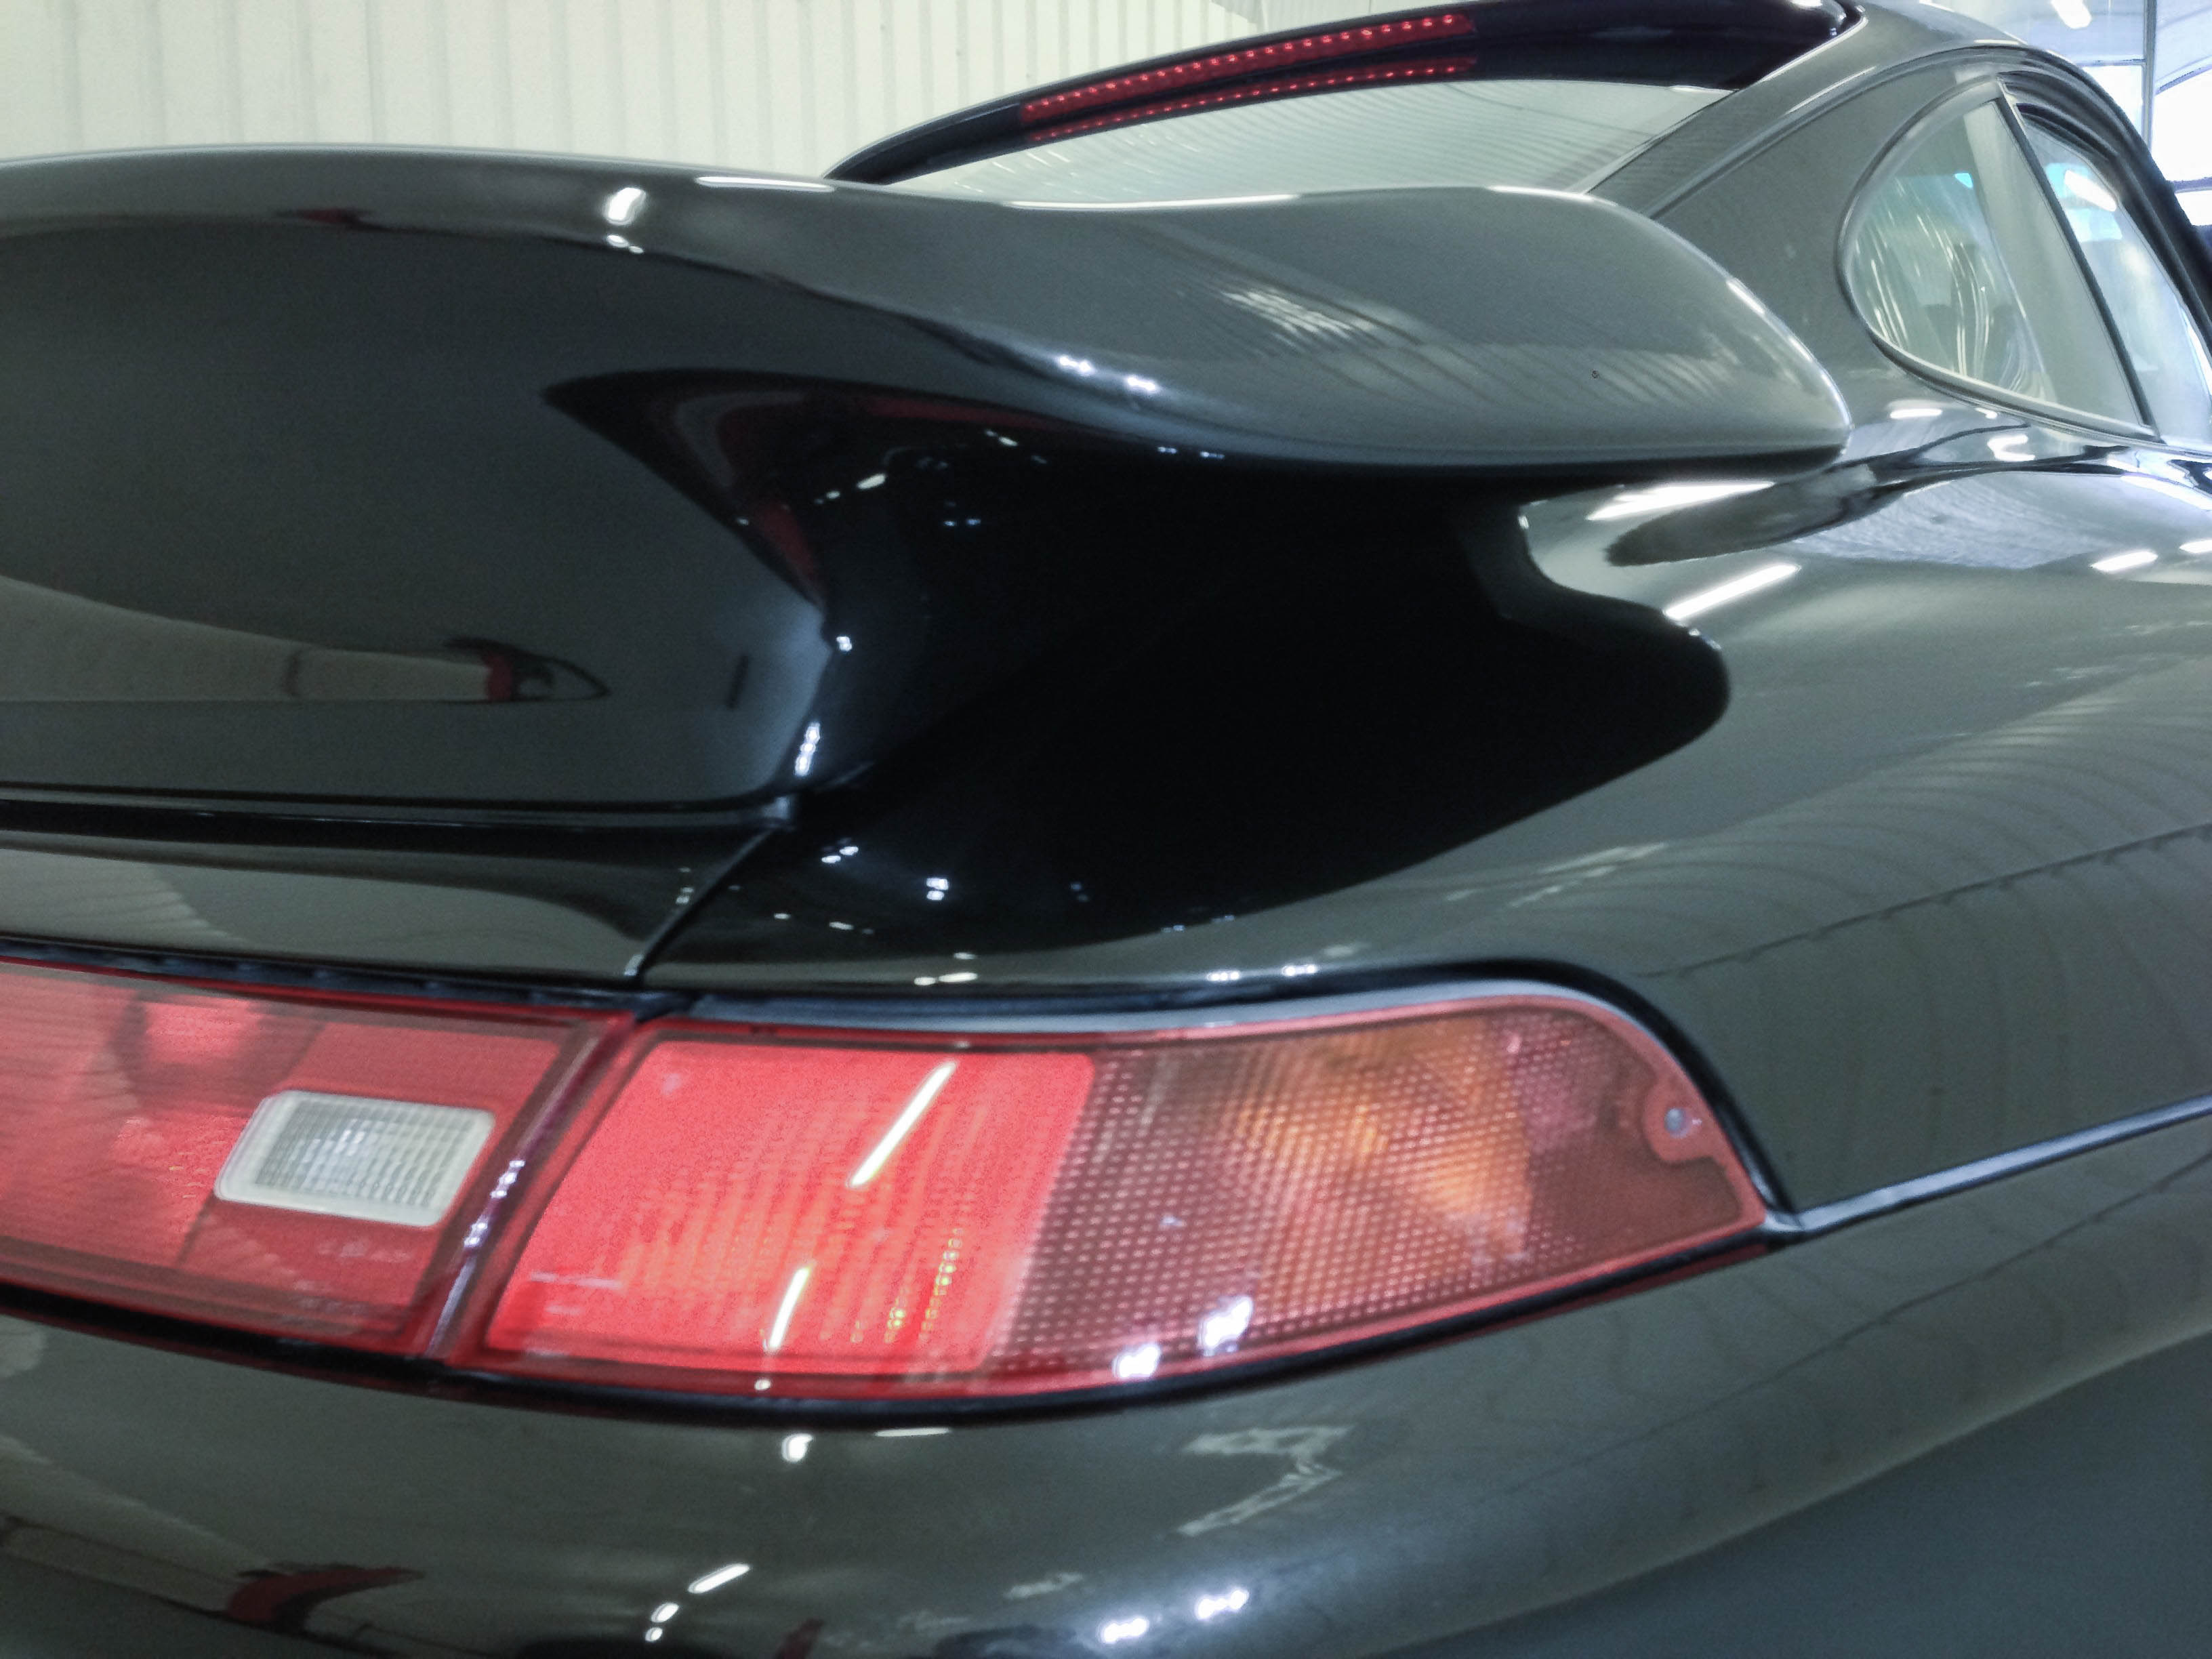 Porsche 911 Turbo – Light detail